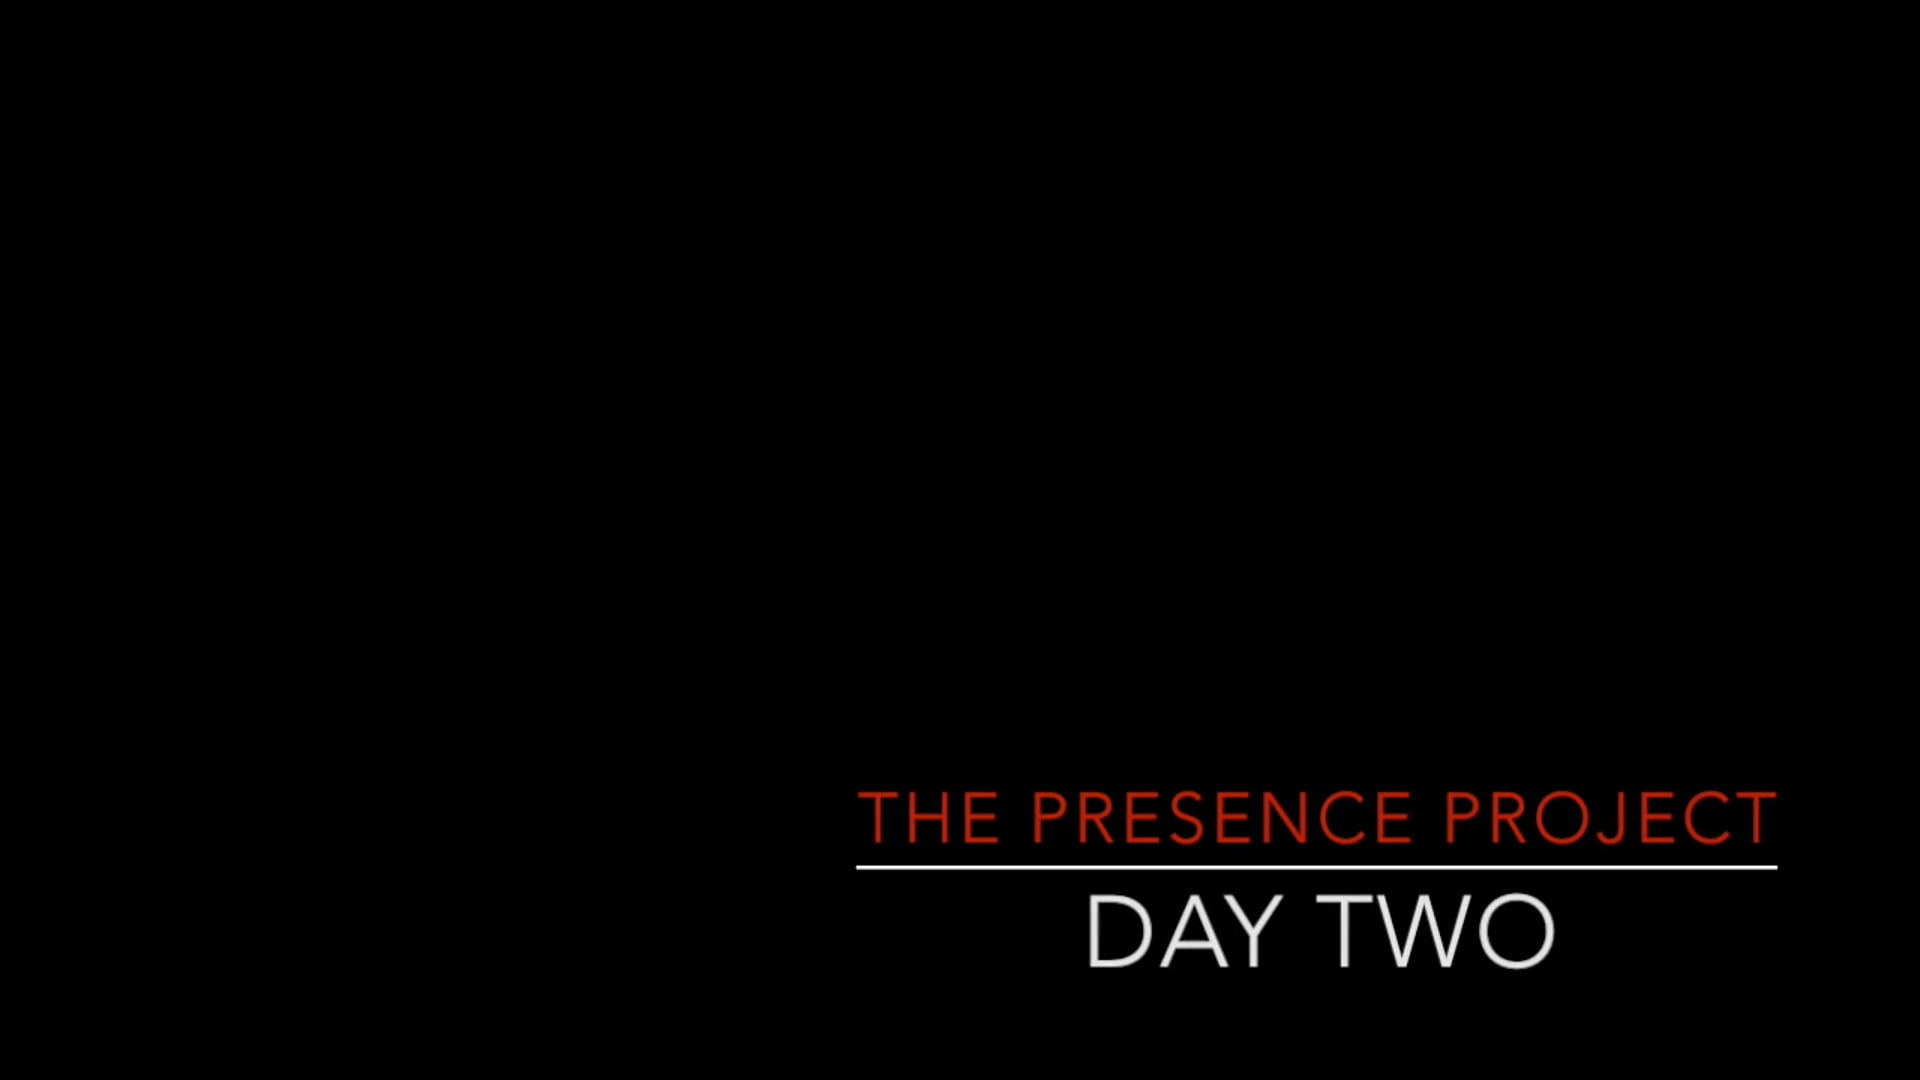 Presence Project, Day 2